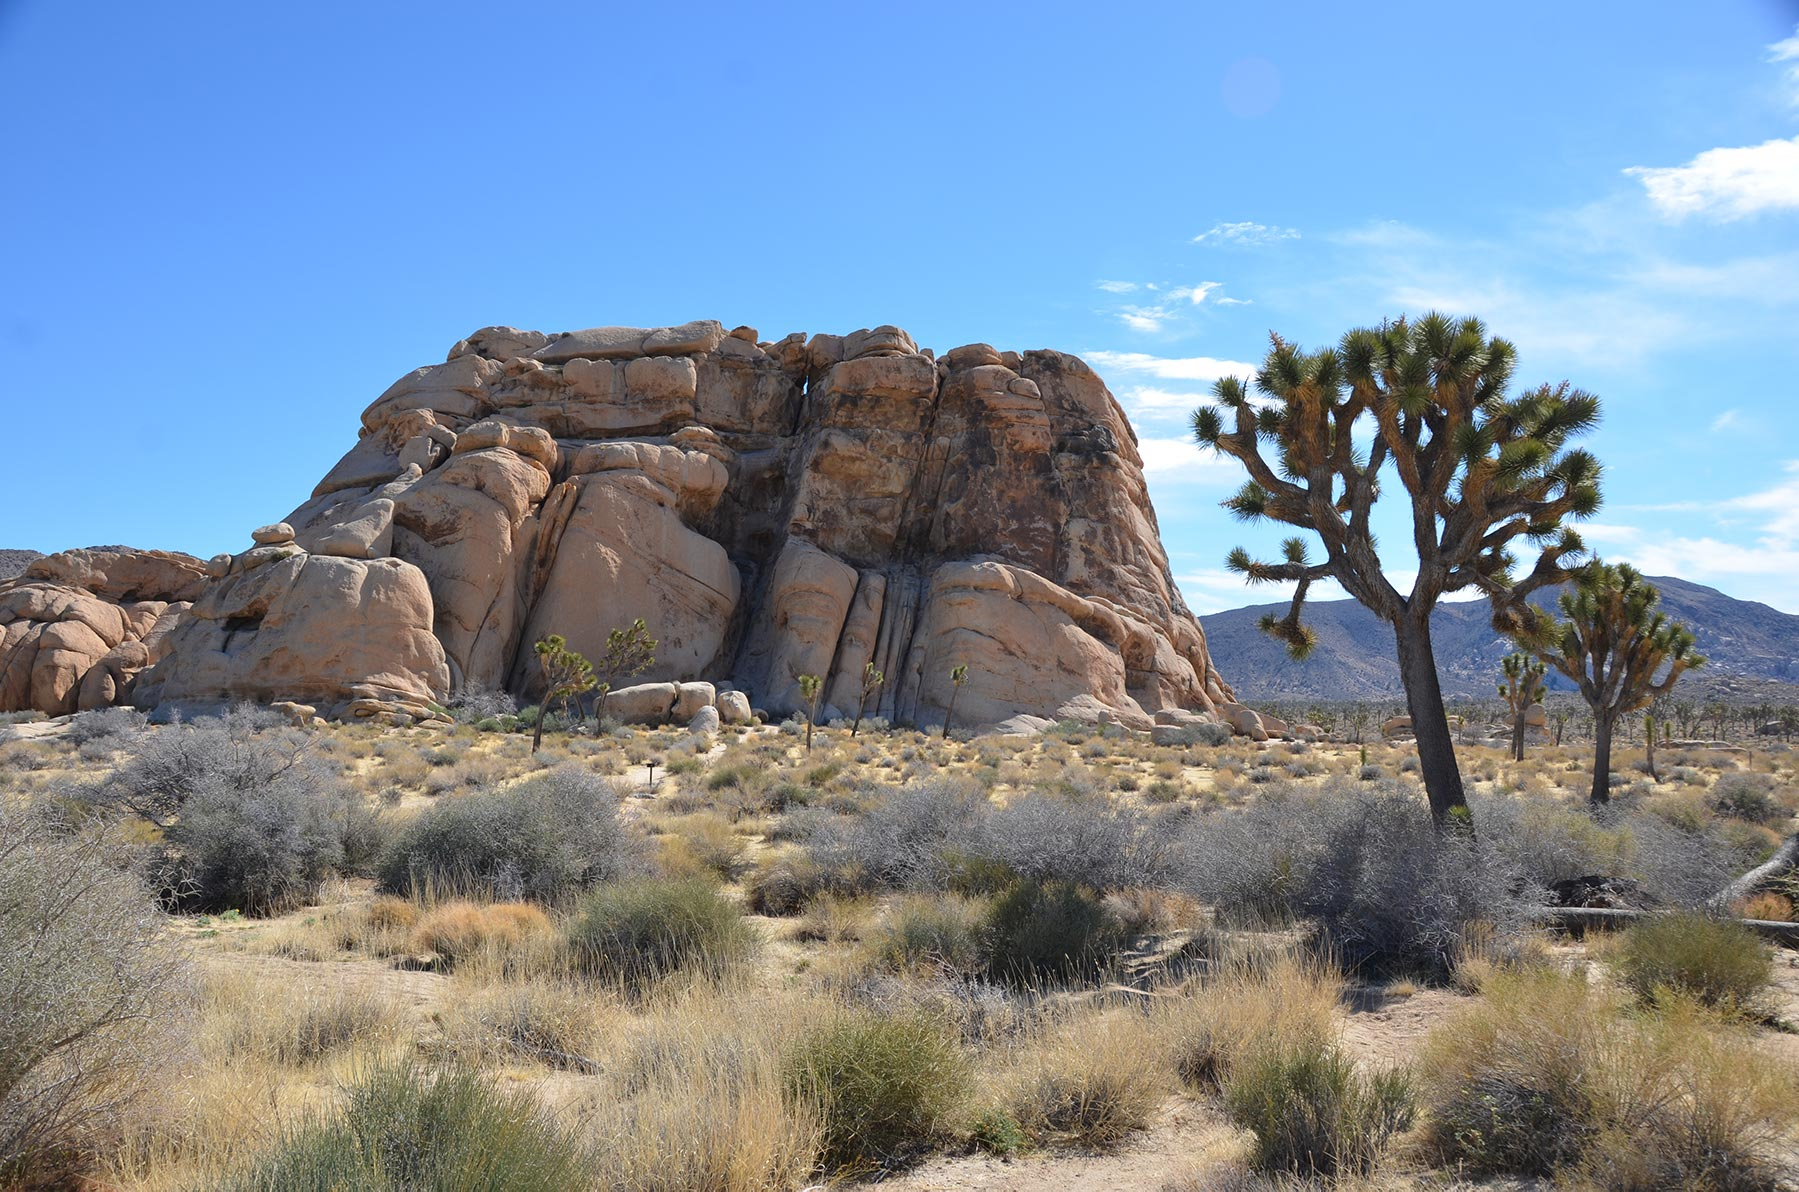 Lone Joshua Trees in front of Cyclops Rock, Joshua Tree National Park, Mojave Desert, California: many vistas in the American Southwest inspire the motifs in the synonymous jewelry collection by jewelry designer Kamila Kubelik.